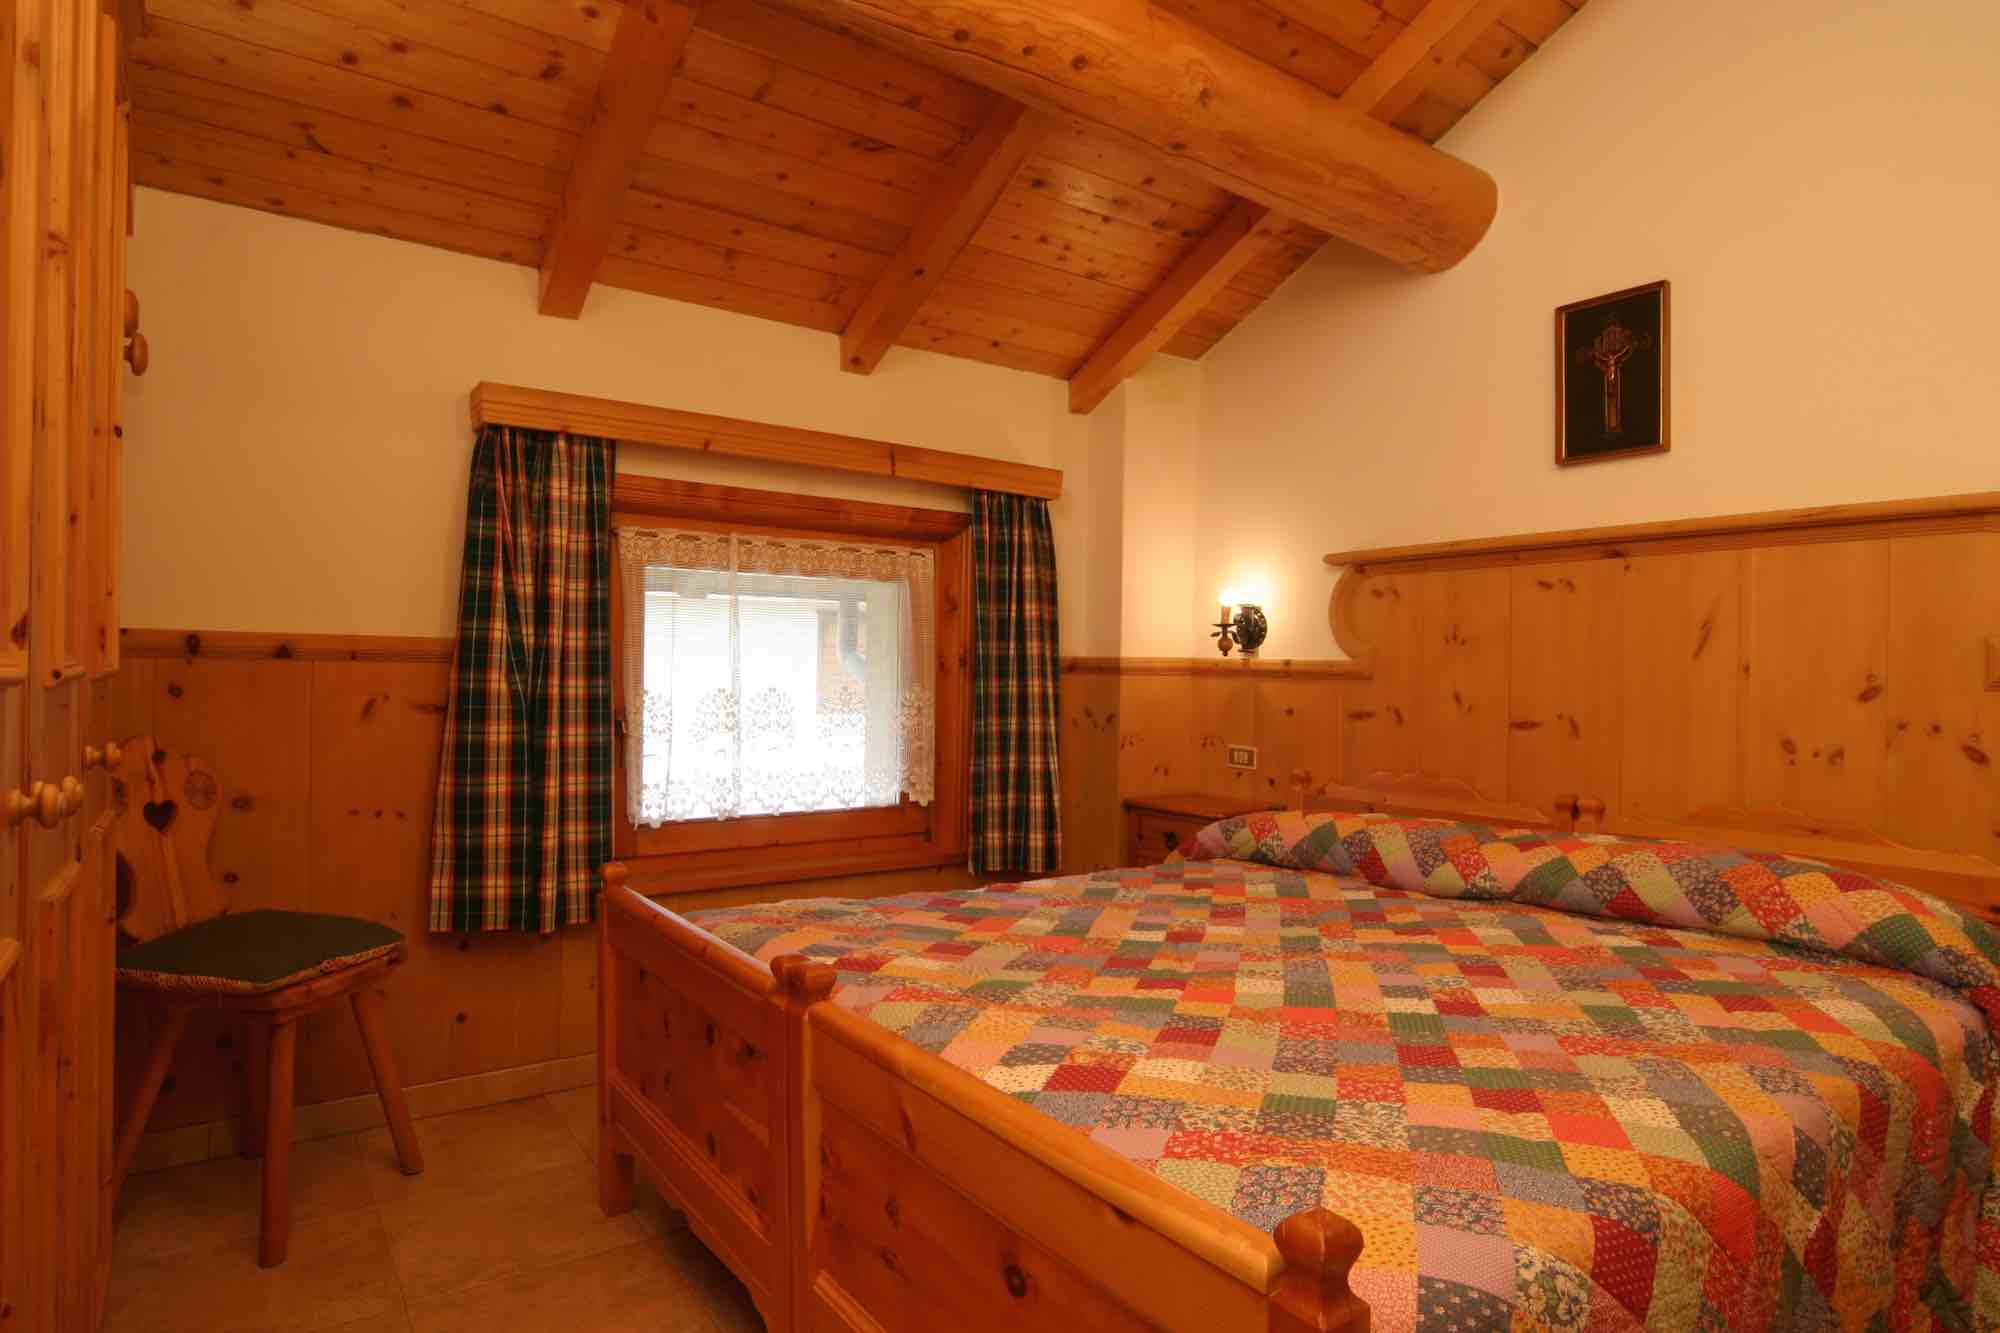 Bait da Borch - Via Saroch N.1430/f, Livigno 23041 - Apartment - Appartamento Vetta 3